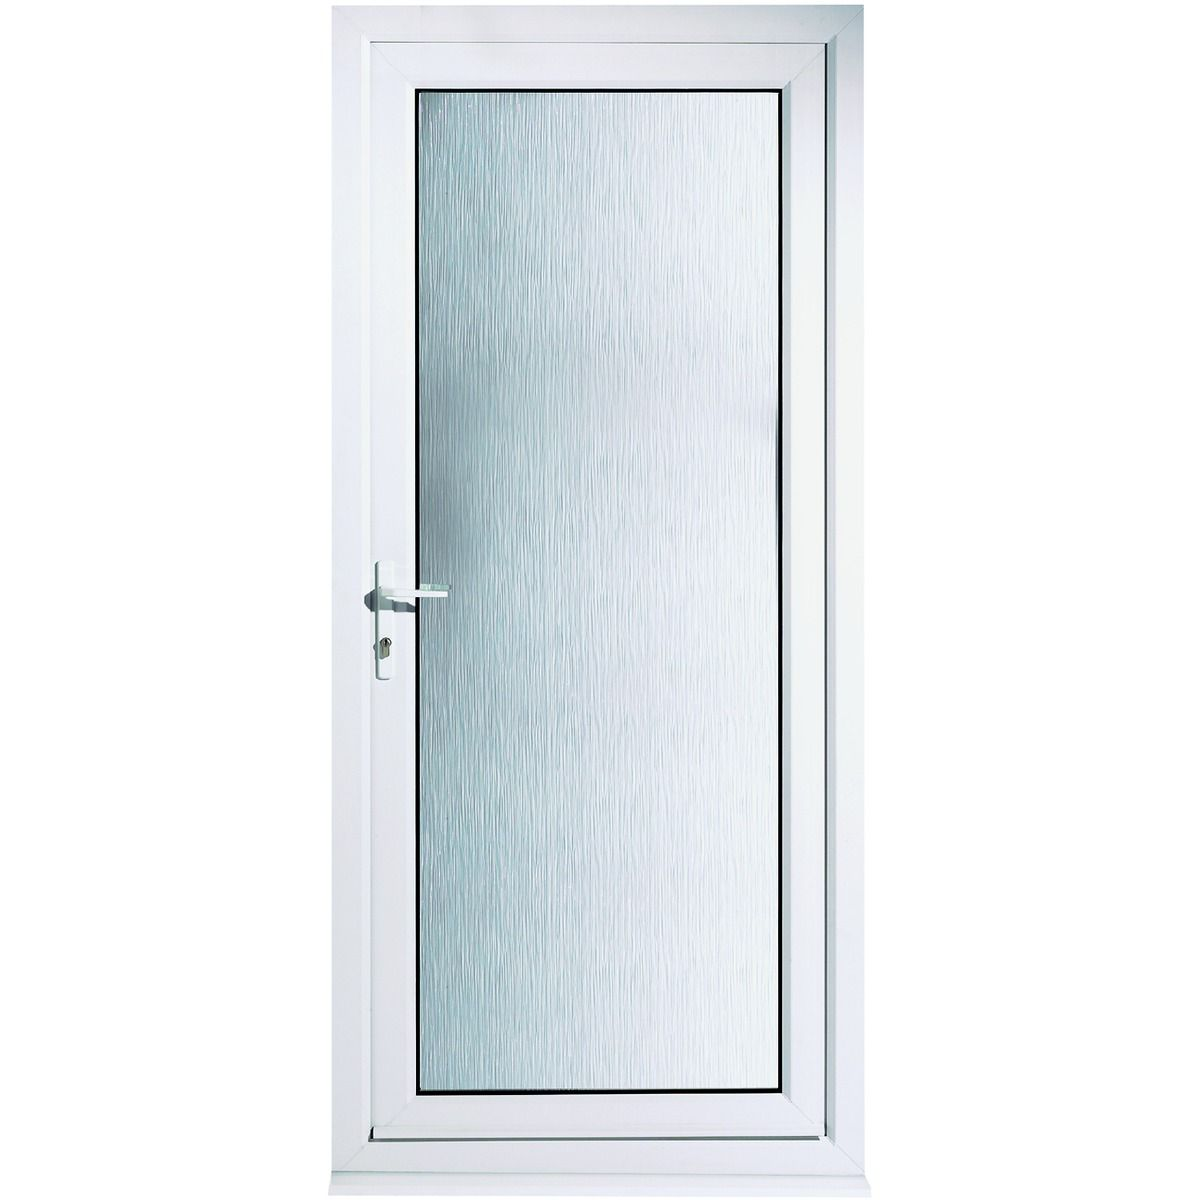 Wickes Humber Pre-hung Upvc Door 2085 x 840mm Right Hand Hung | Wickes.co.uk